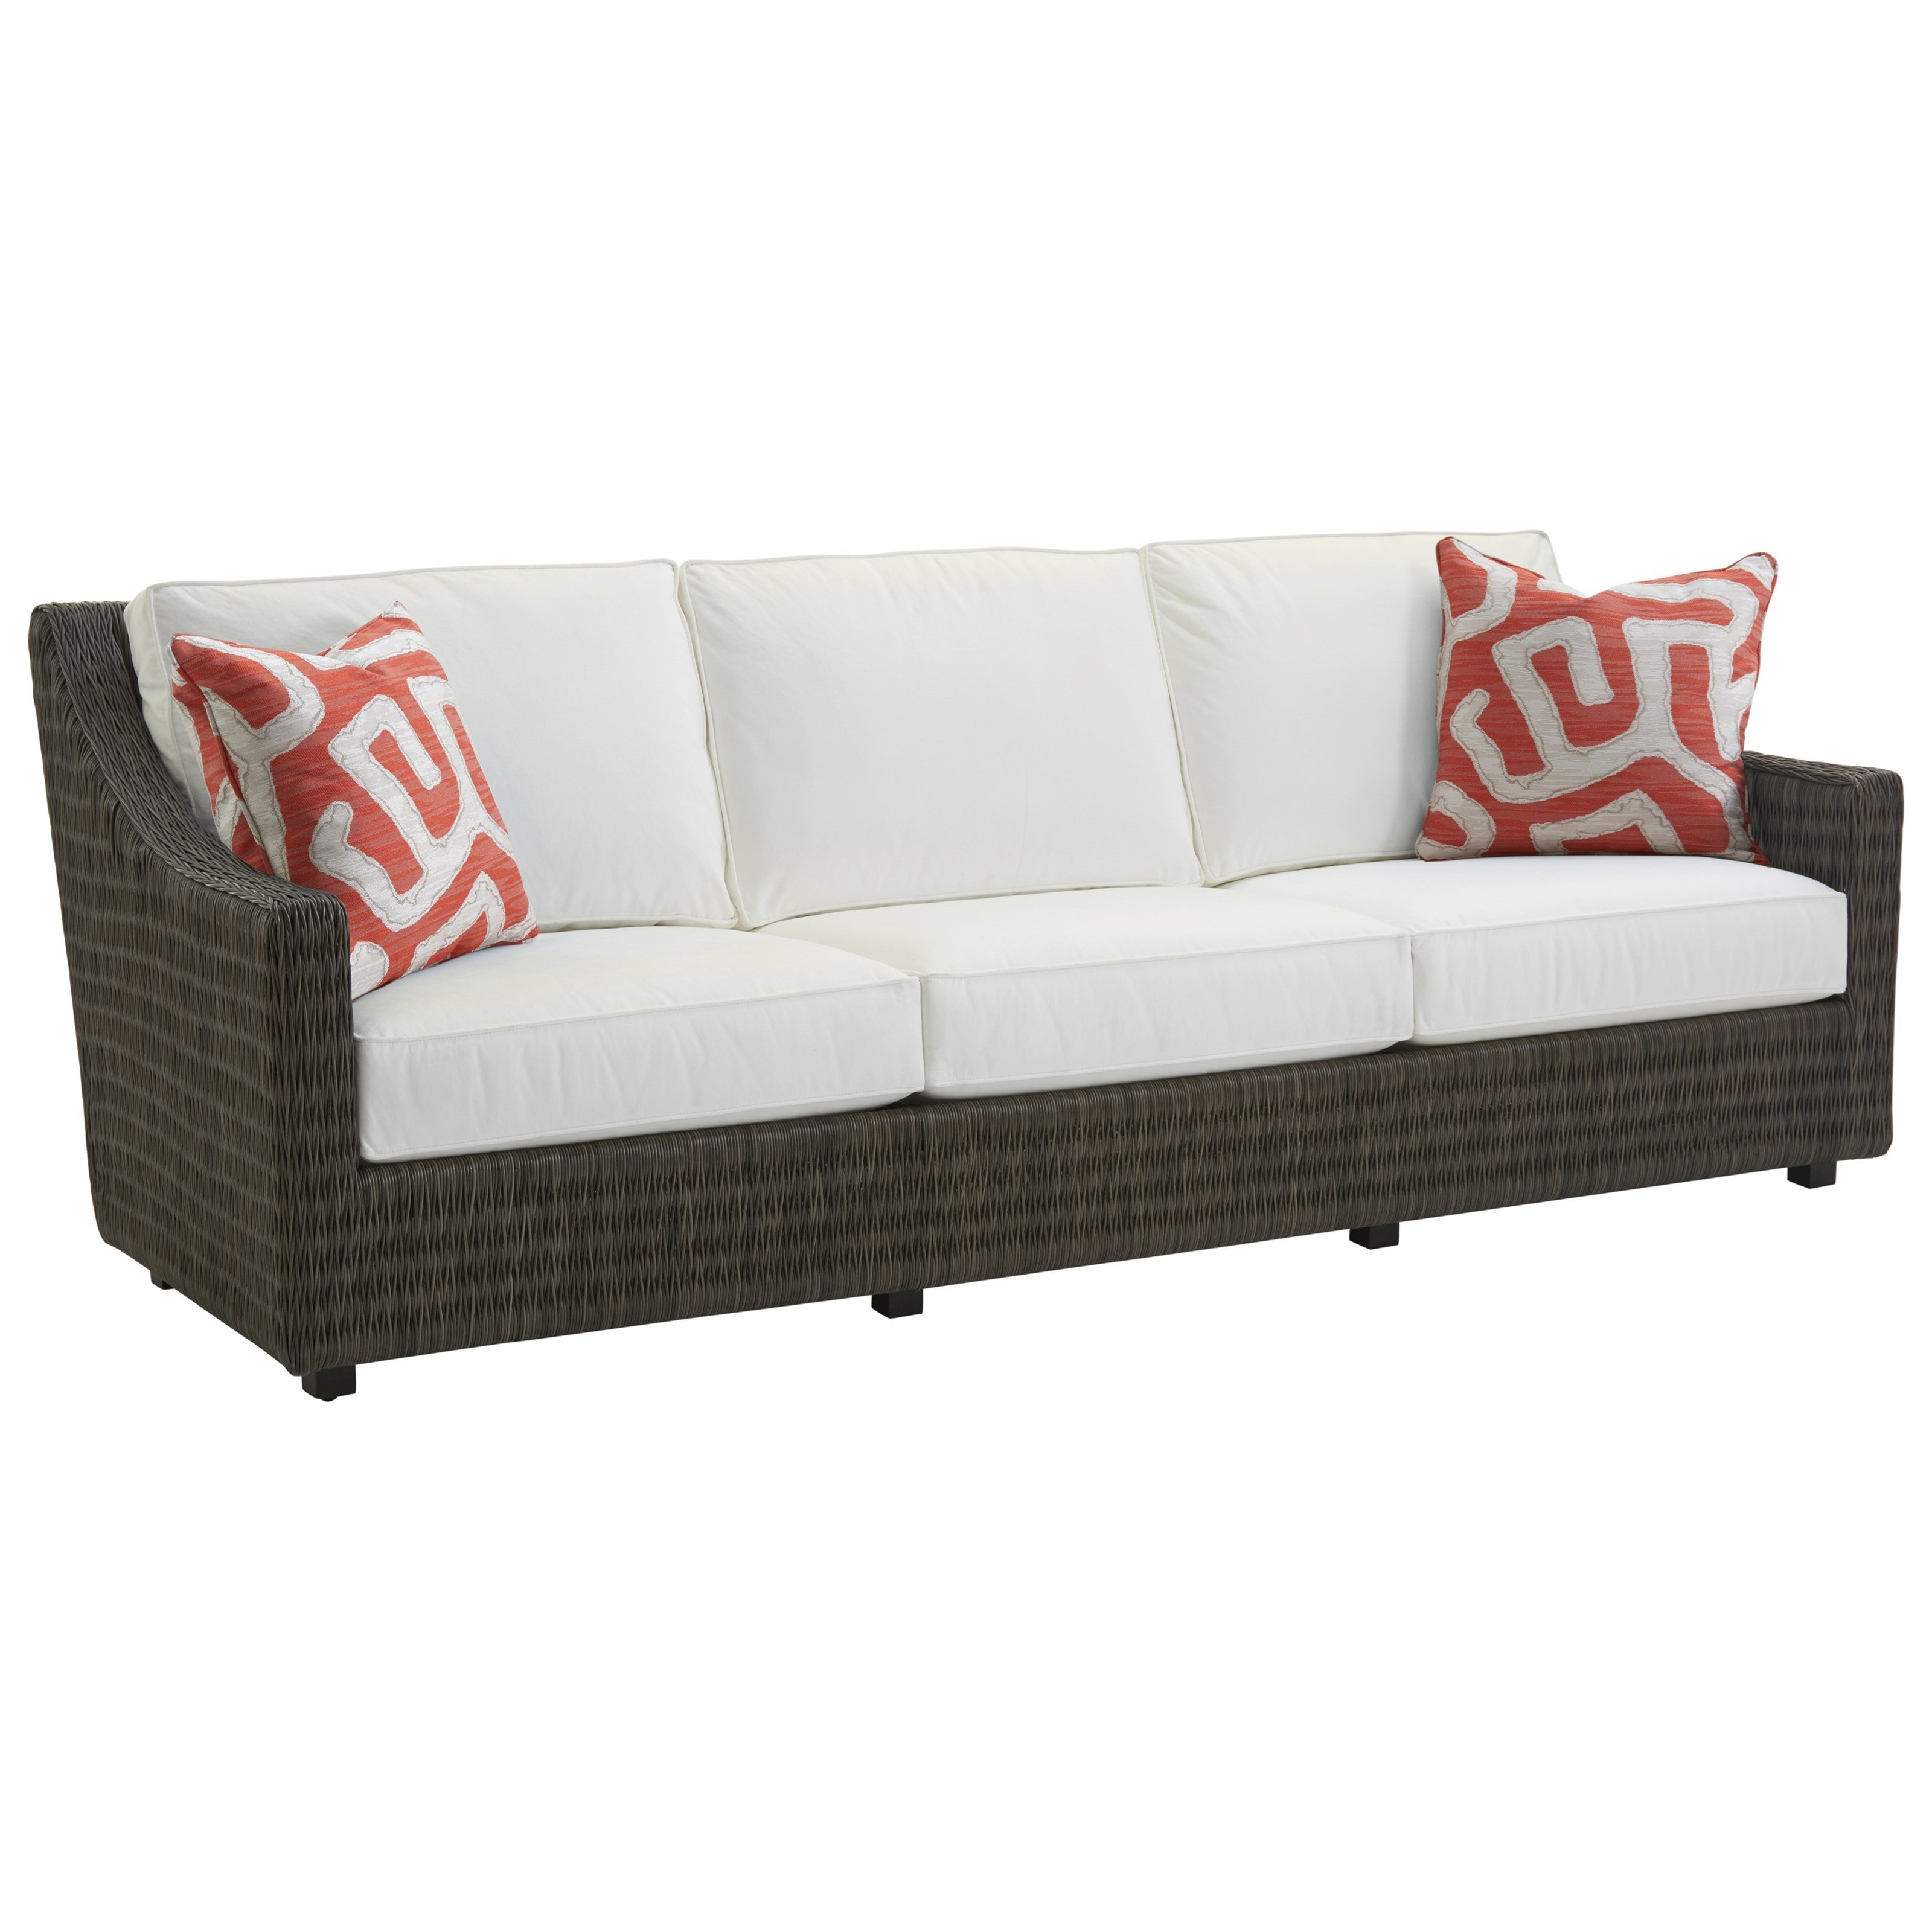 Cypress Point Ocean Terrace Outdoor Sofa by Tommy Bahama Outdoor Living at Baer's Furniture